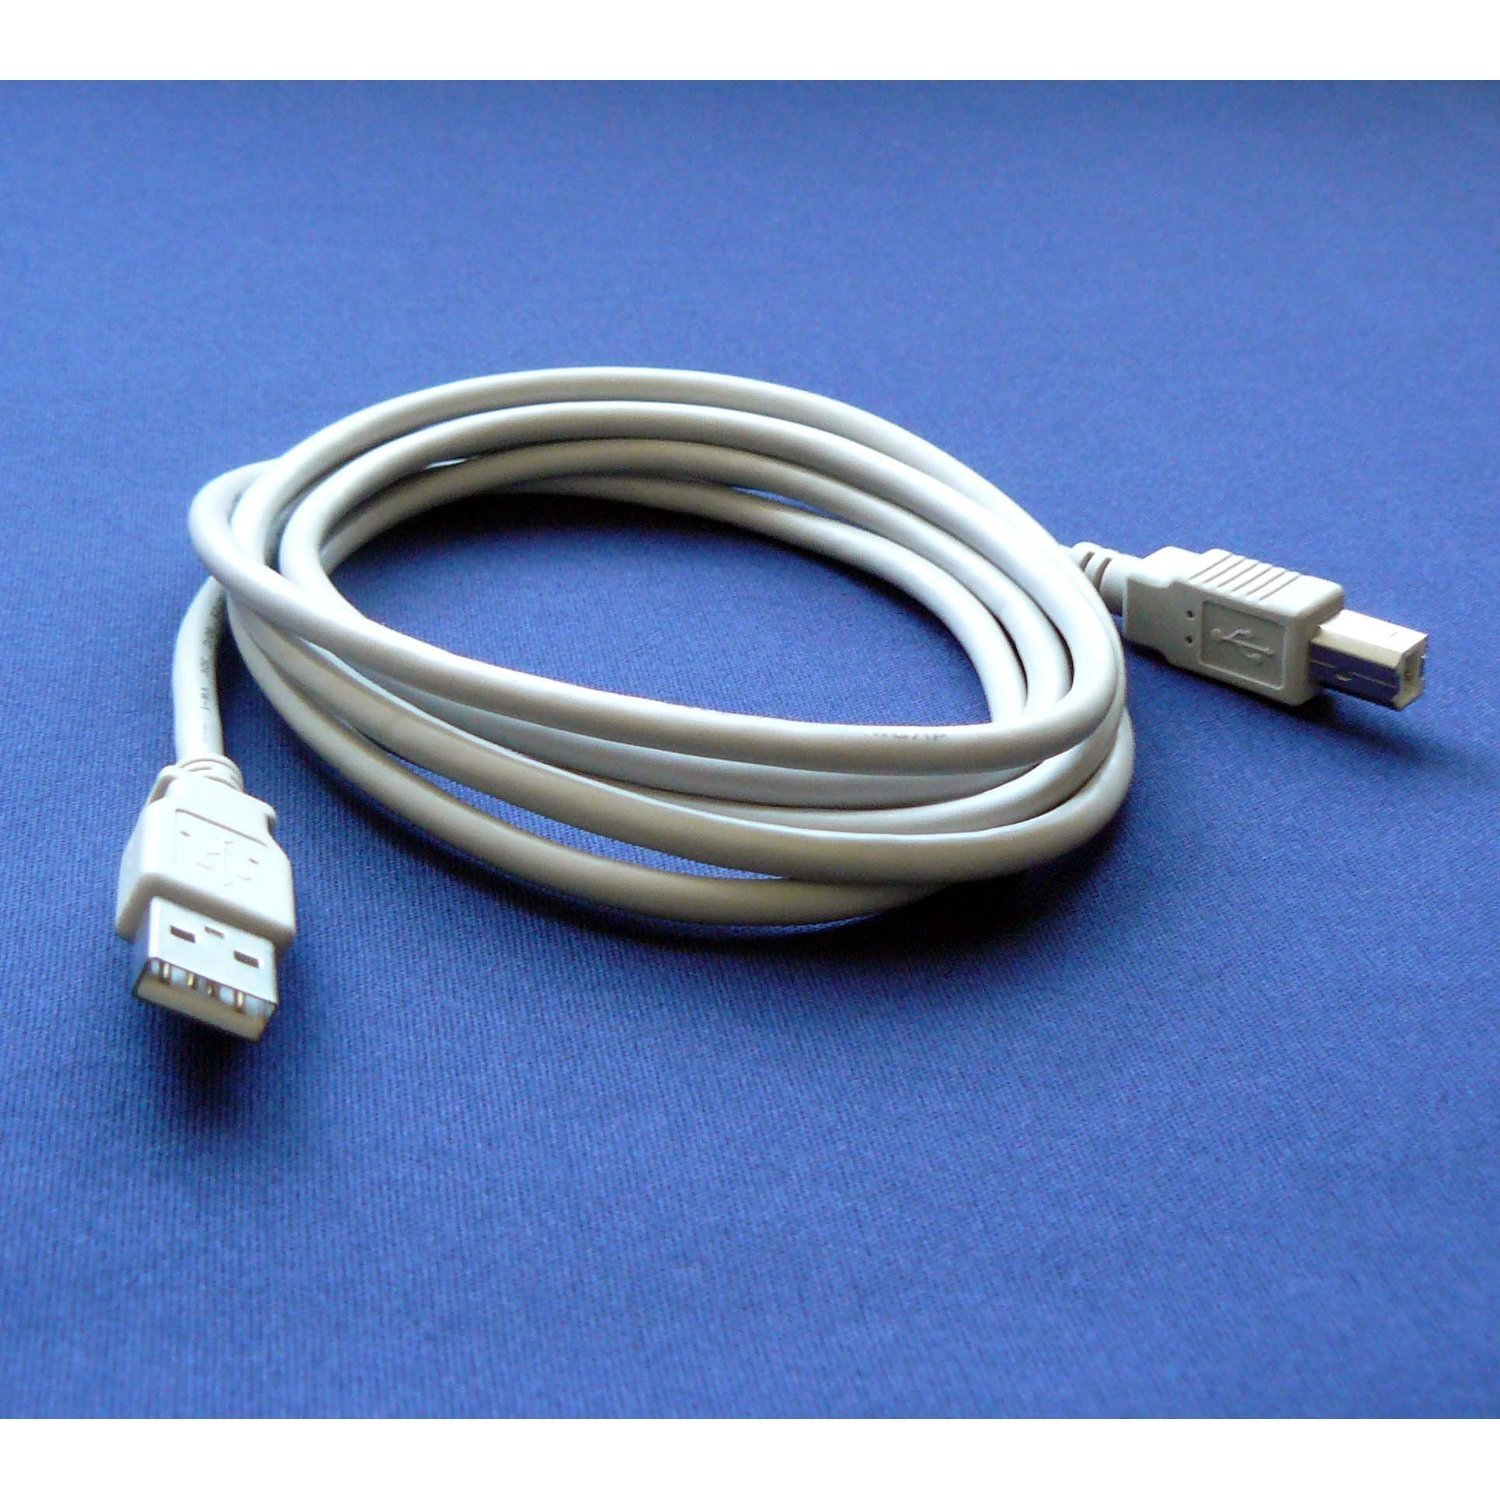 Primary image for HP PhotoSmart 245 Compact Photo Printer Compatible USB 2.0 Cable Cord for PC,...